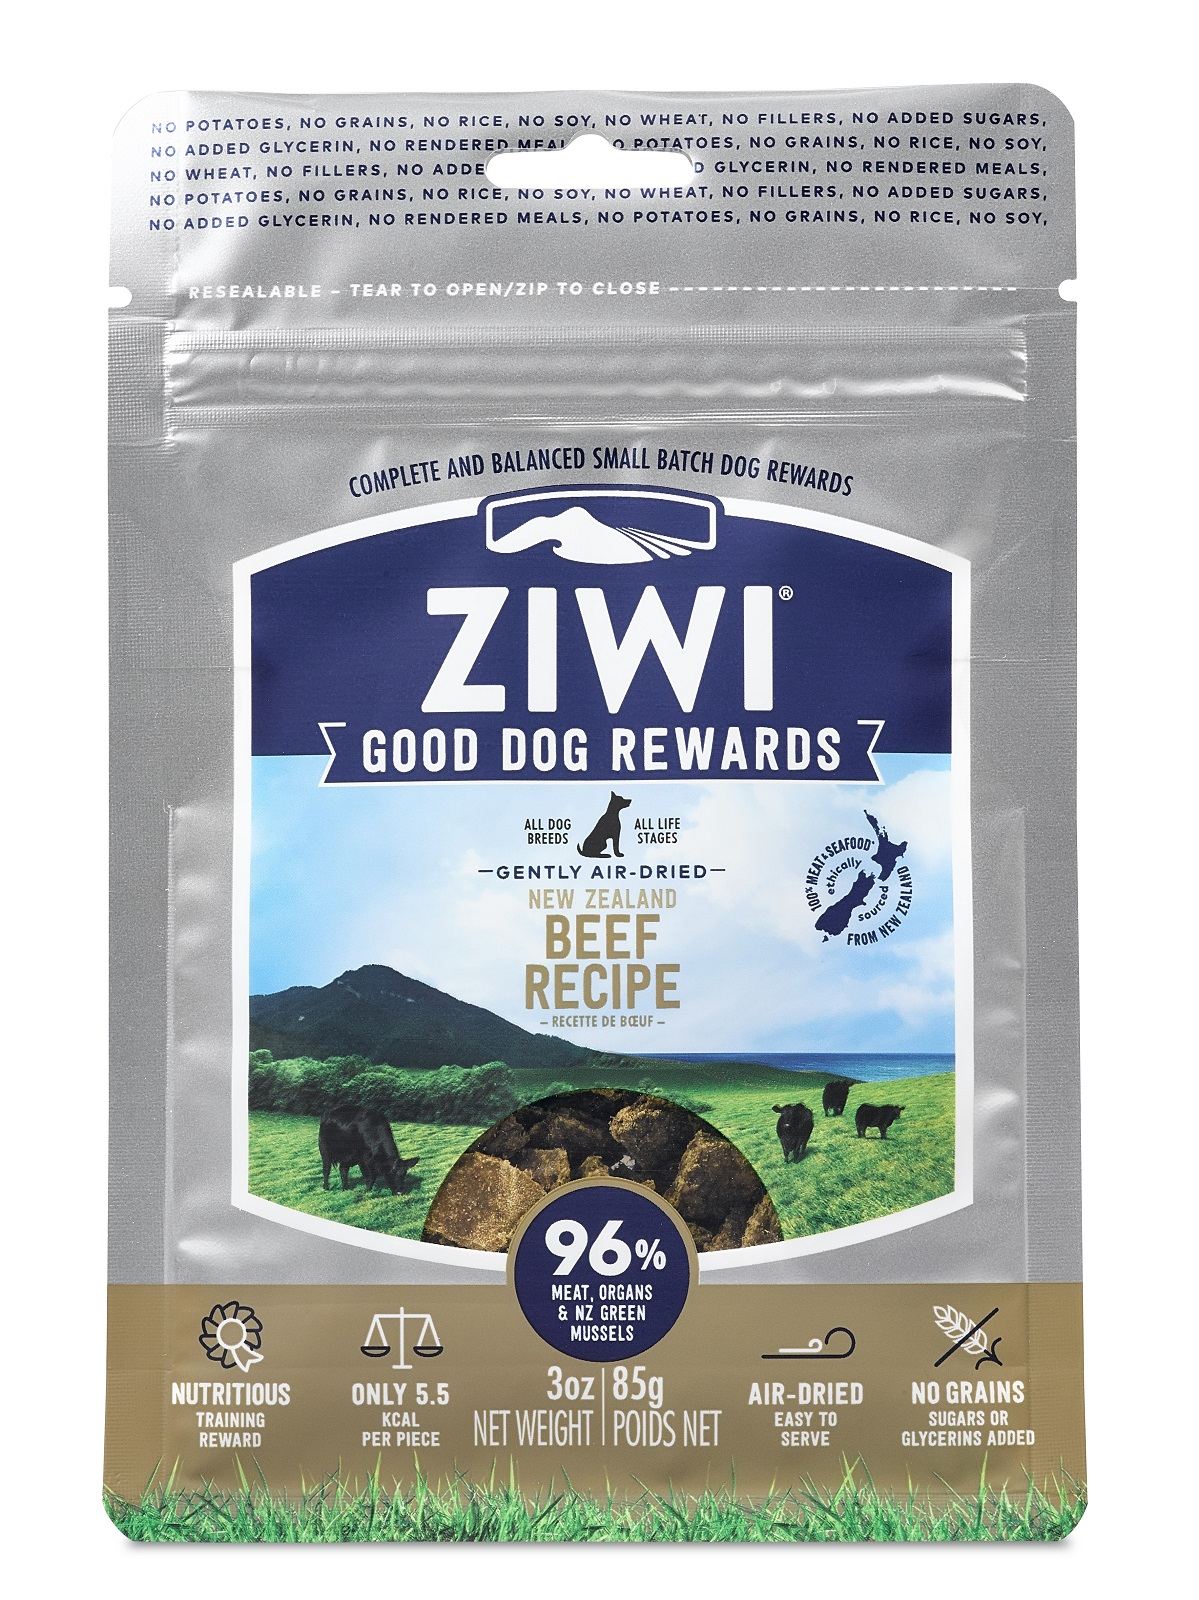 ZIWI Good Dog Rewards Beef Recipe Air-Dried Dog Treats, 3-oz (Size: 3-oz, Weights: 3 ounces) Image